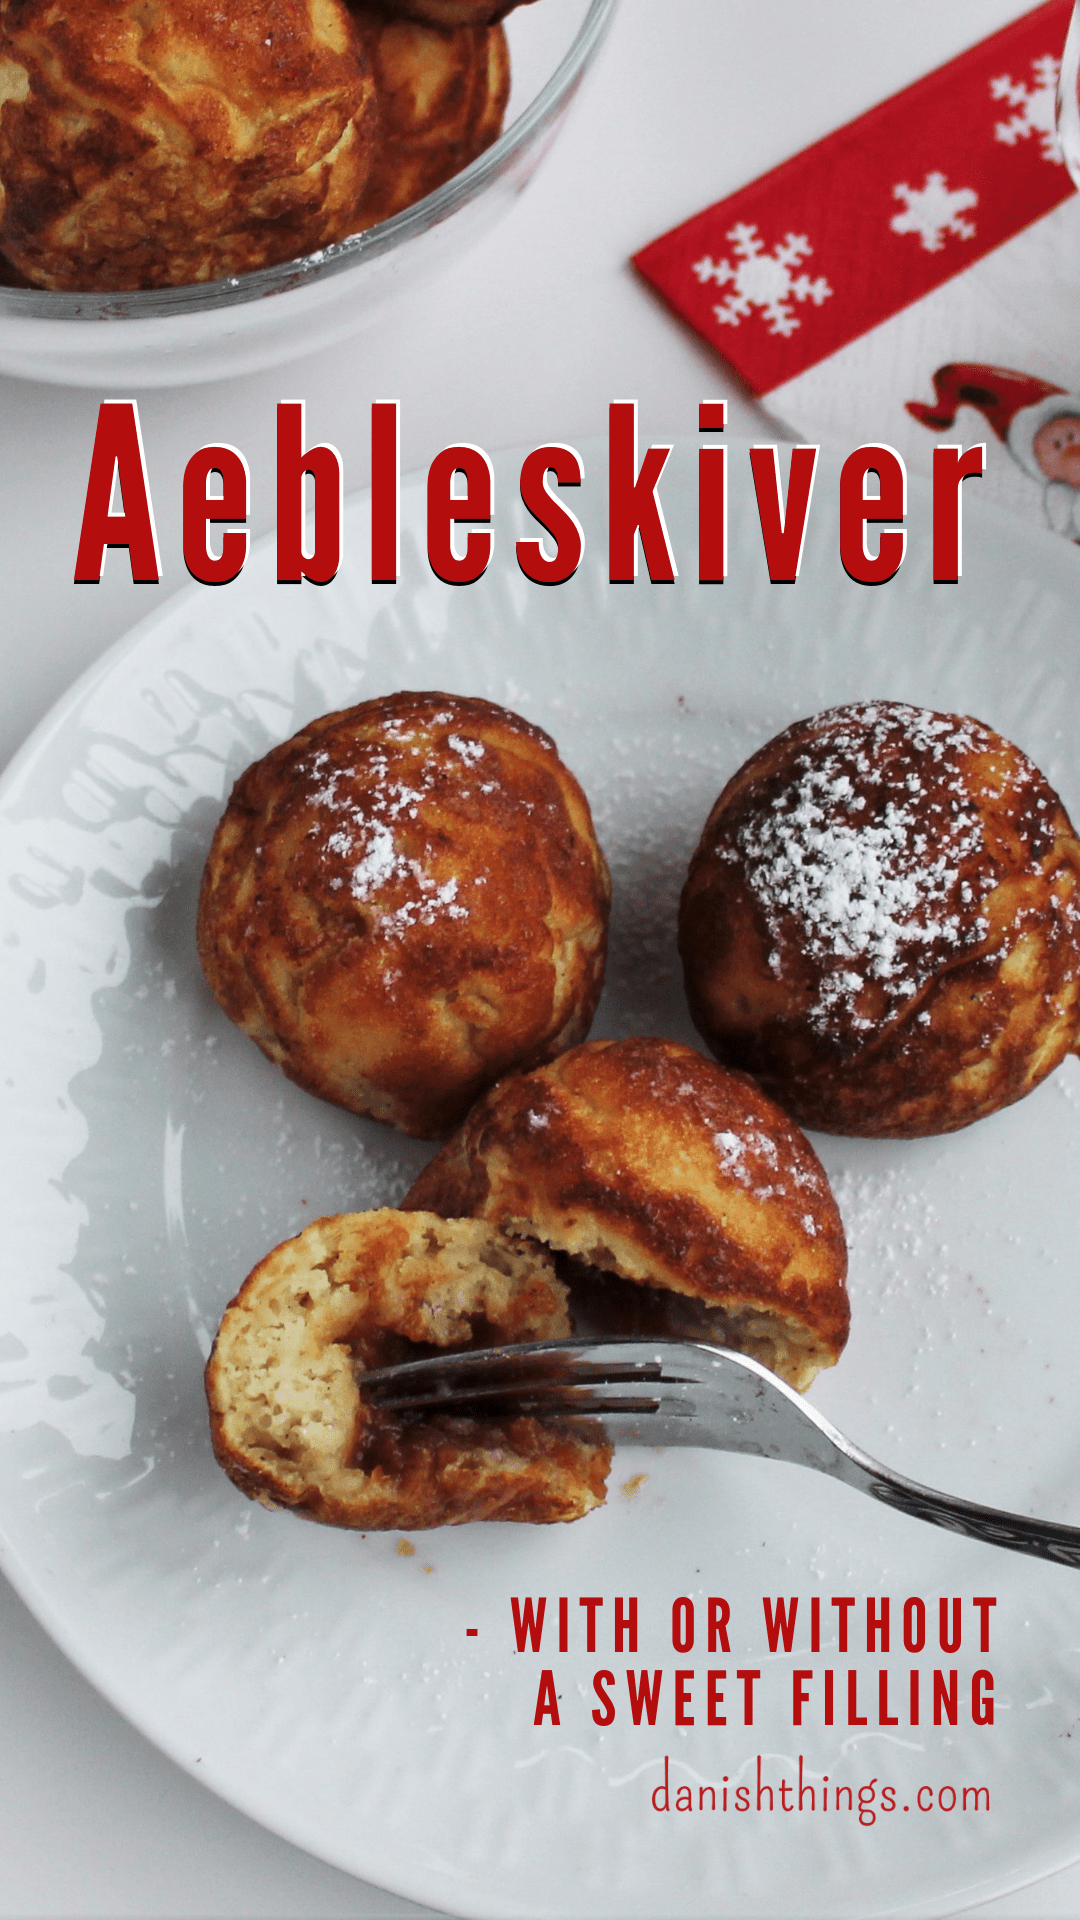 Filled Aebleskiver Round Aebleskiver With Or Without A Sweet Filling Recipe Aebleskiver Pancake Balls Apple Dumplings